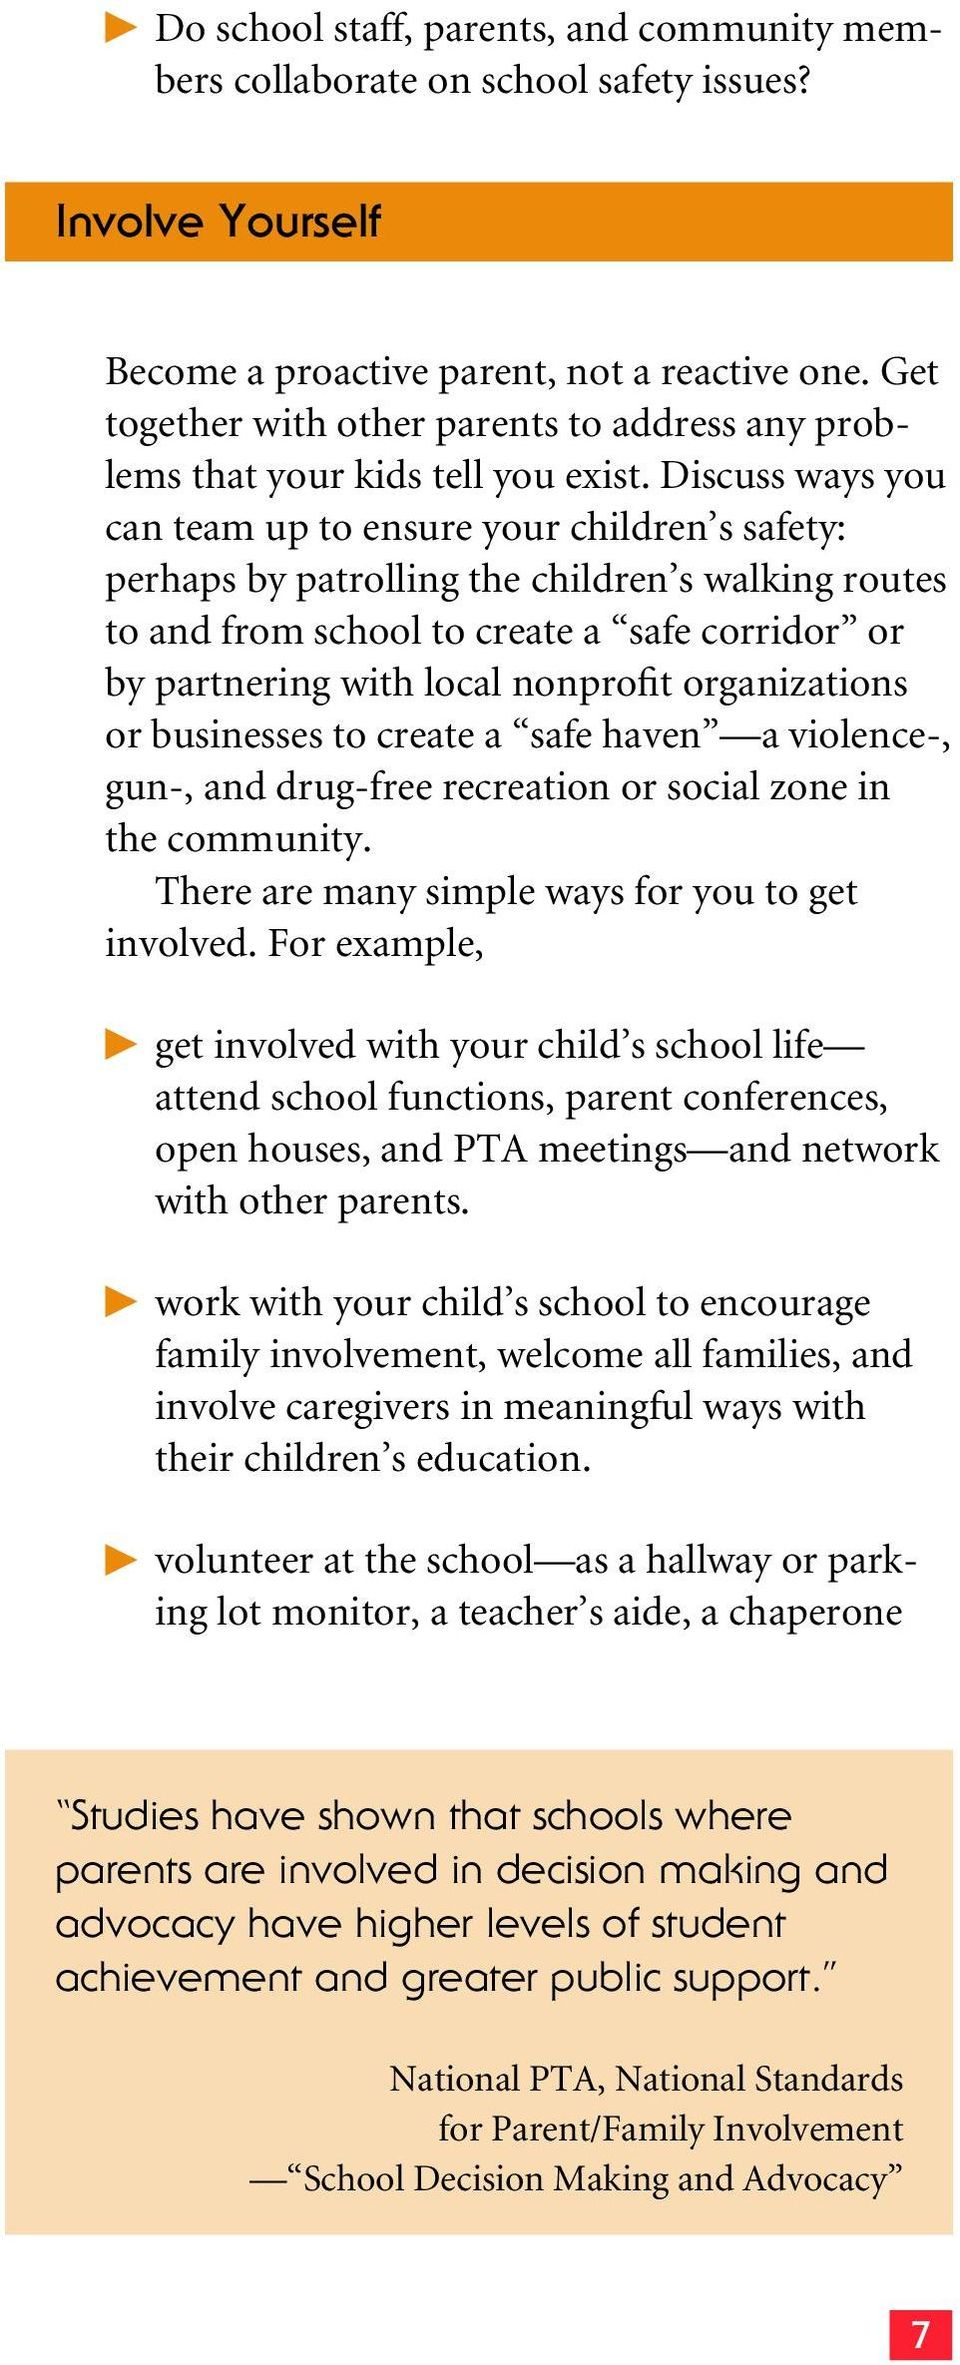 Discuss ways you can team up to ensure your children s safety: perhaps by patrolling the children s walking routes to and from school to create a safe corridor or by partnering with local nonprofit